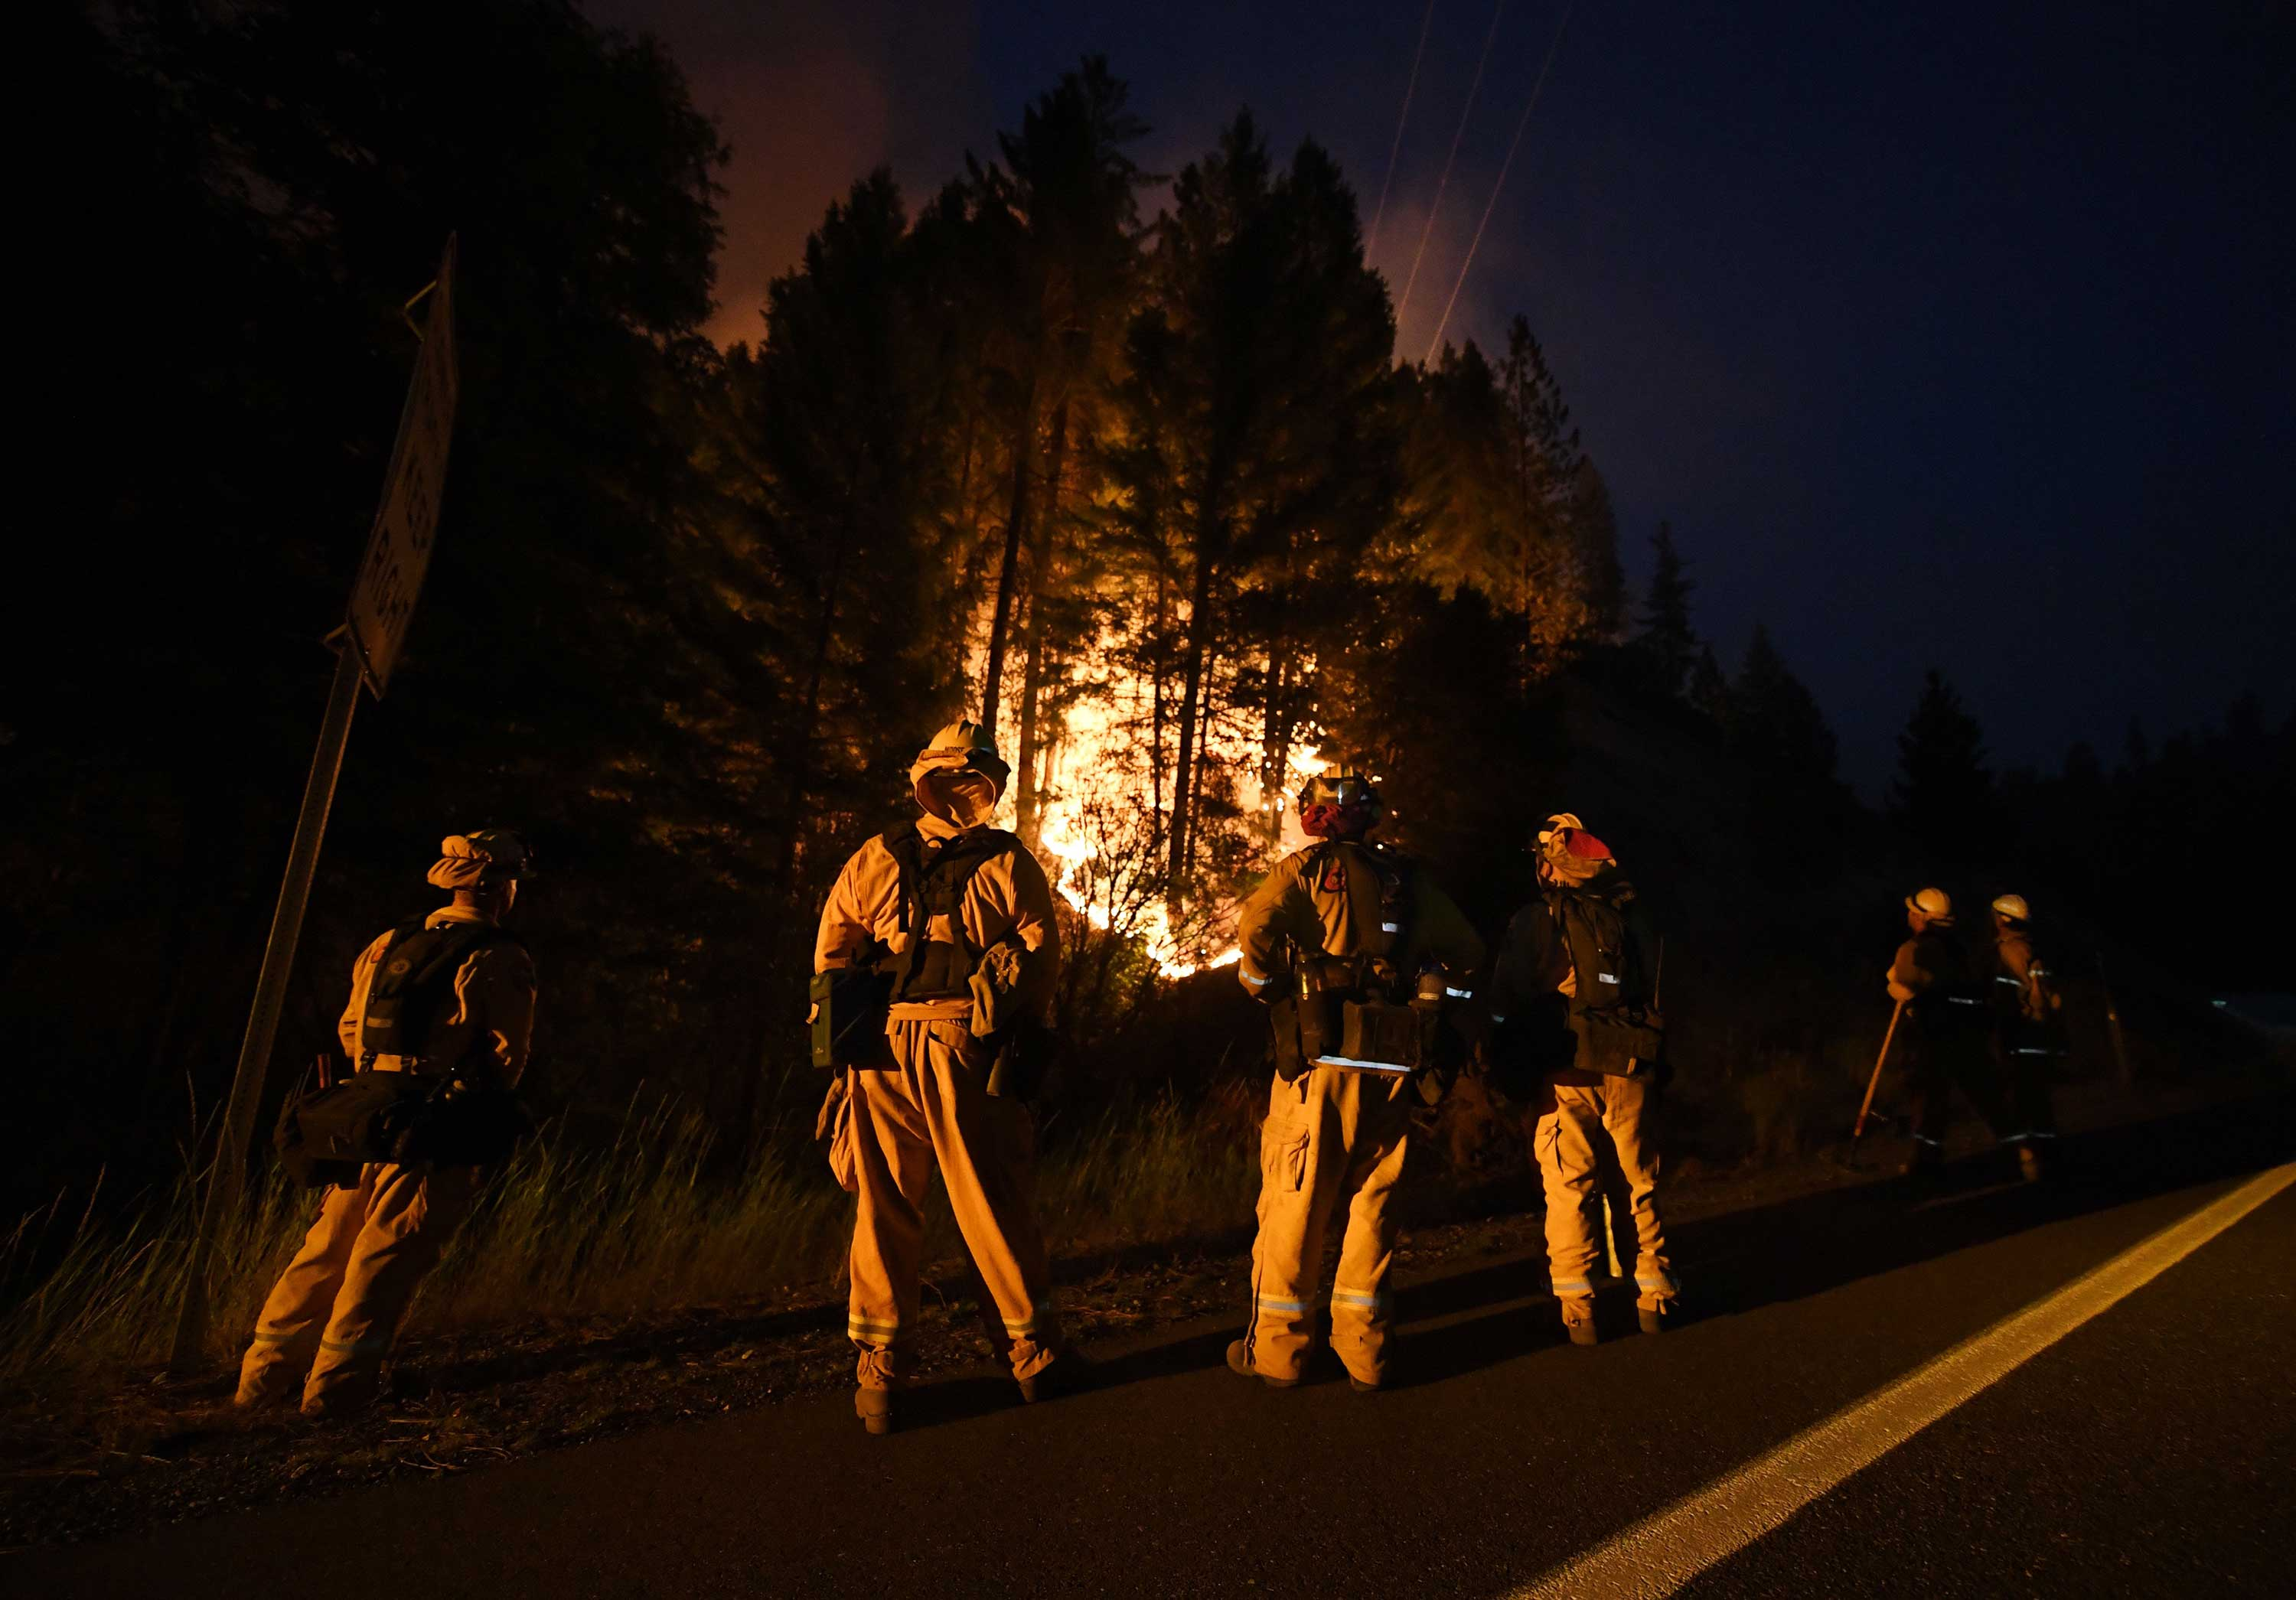 <div class='meta'><div class='origin-logo' data-origin='none'></div><span class='caption-text' data-credit='MARK RALSTON/AFP/Getty Images'>Firefighters keep watch at a containment line as the Carr fire continues to spreads towards the town of Douglas City near Redding, California, on July 30, 2018.</span></div>